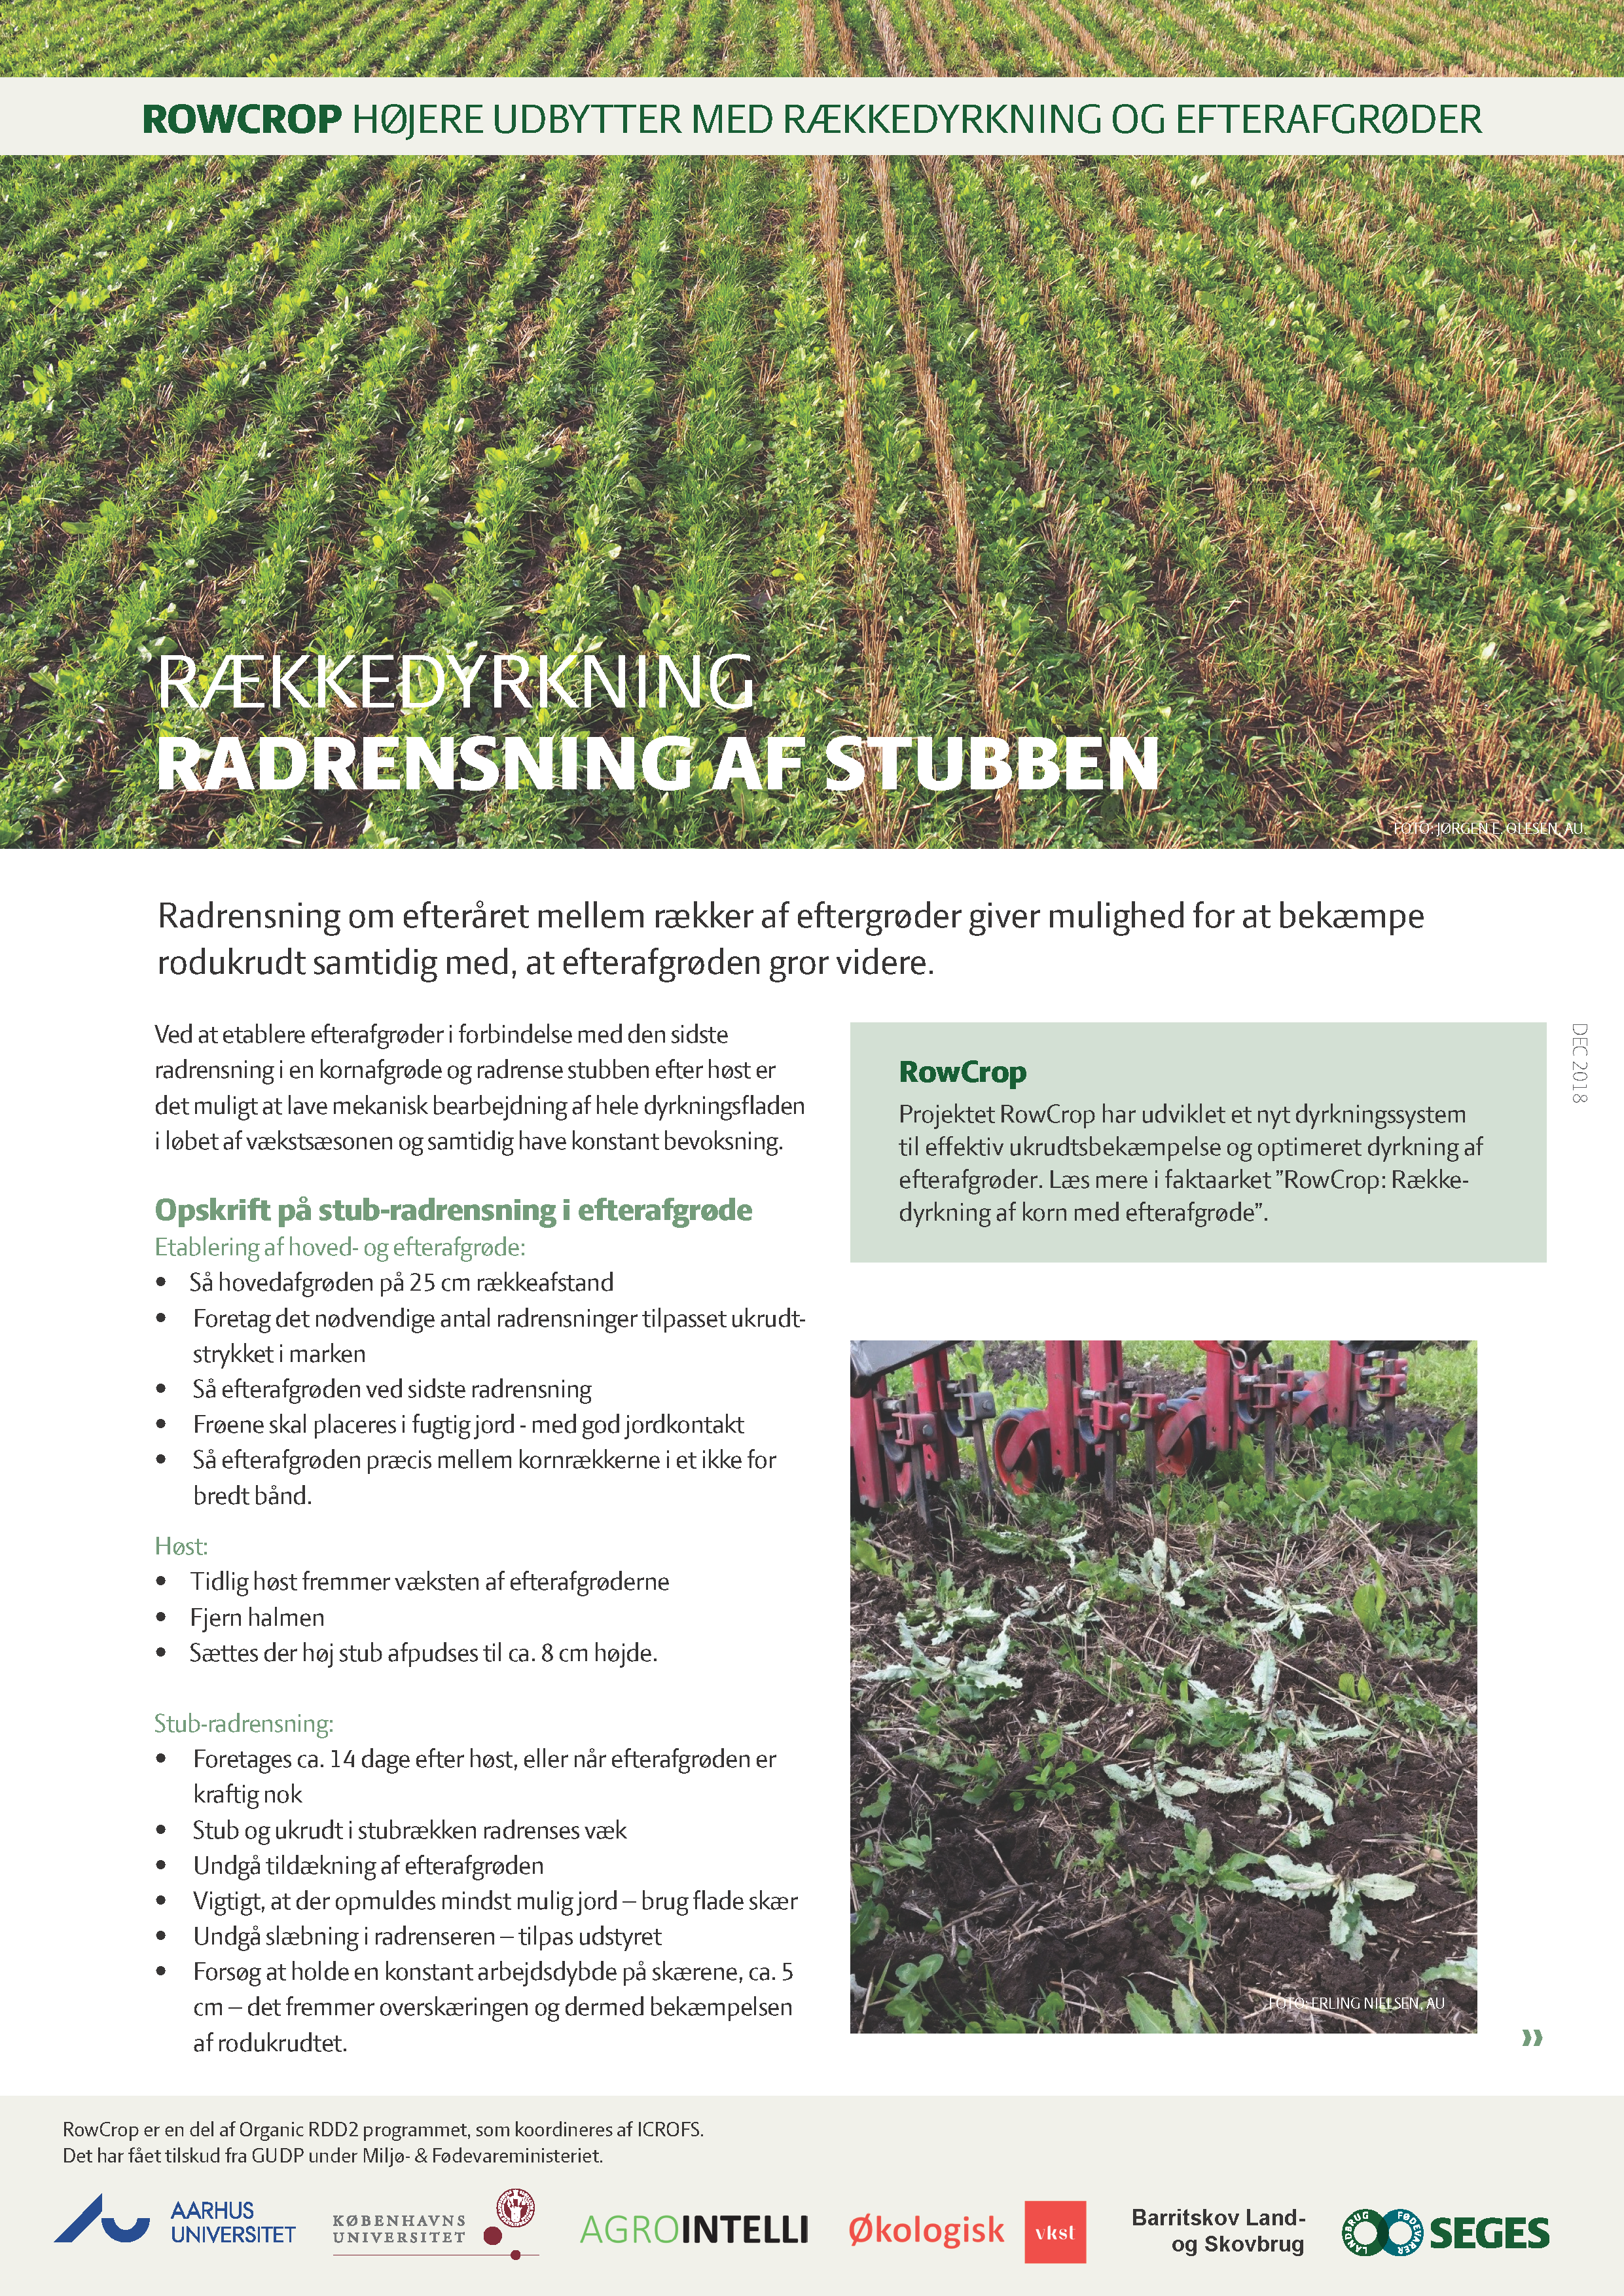 Cultivation in rows – Weed control between stubble rows